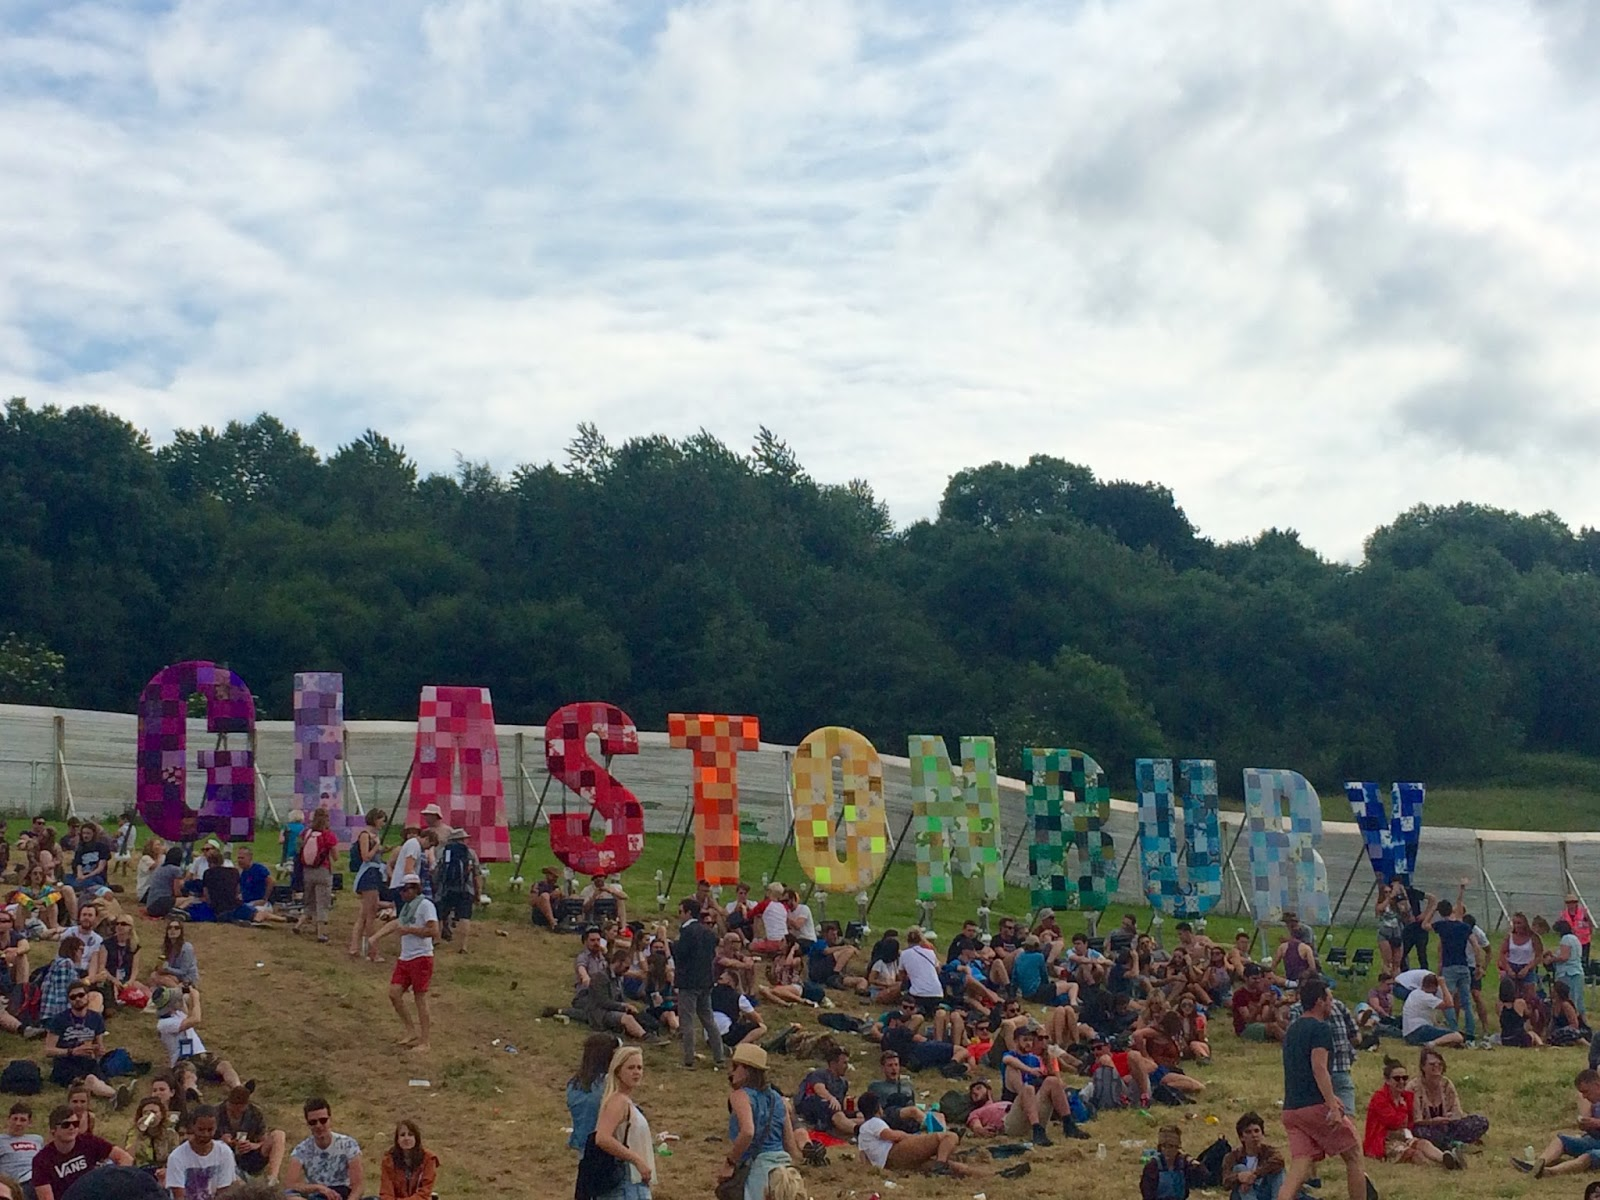 Iconic Glastonbury Sign at the Festival